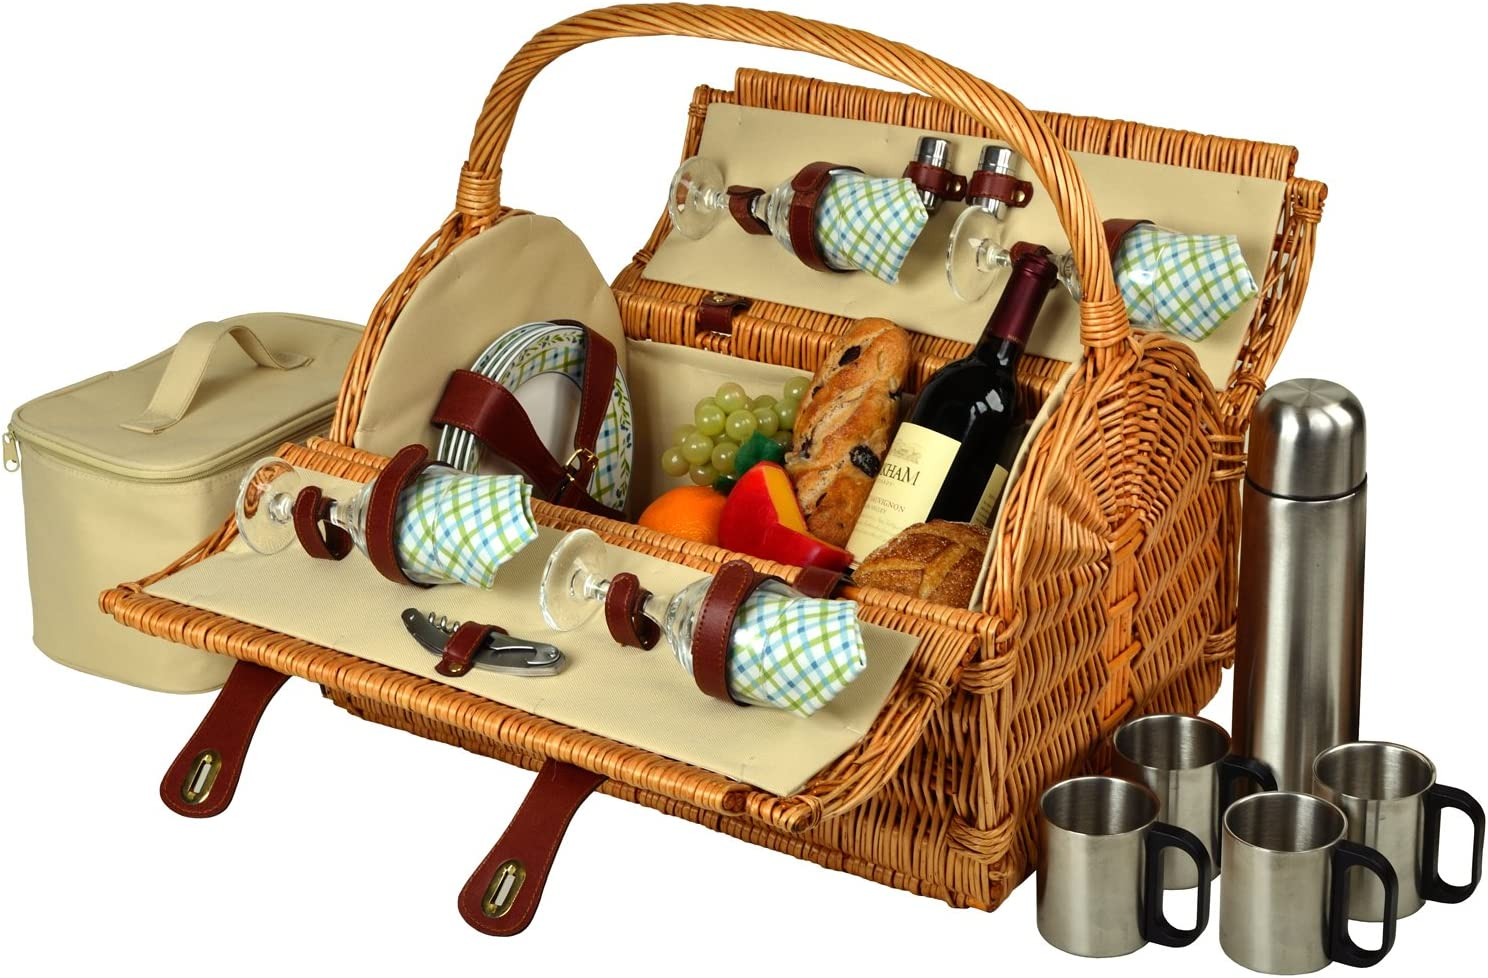 Picnic trust at Recommendation Ascot Yorkshire Willow Service for with Basket